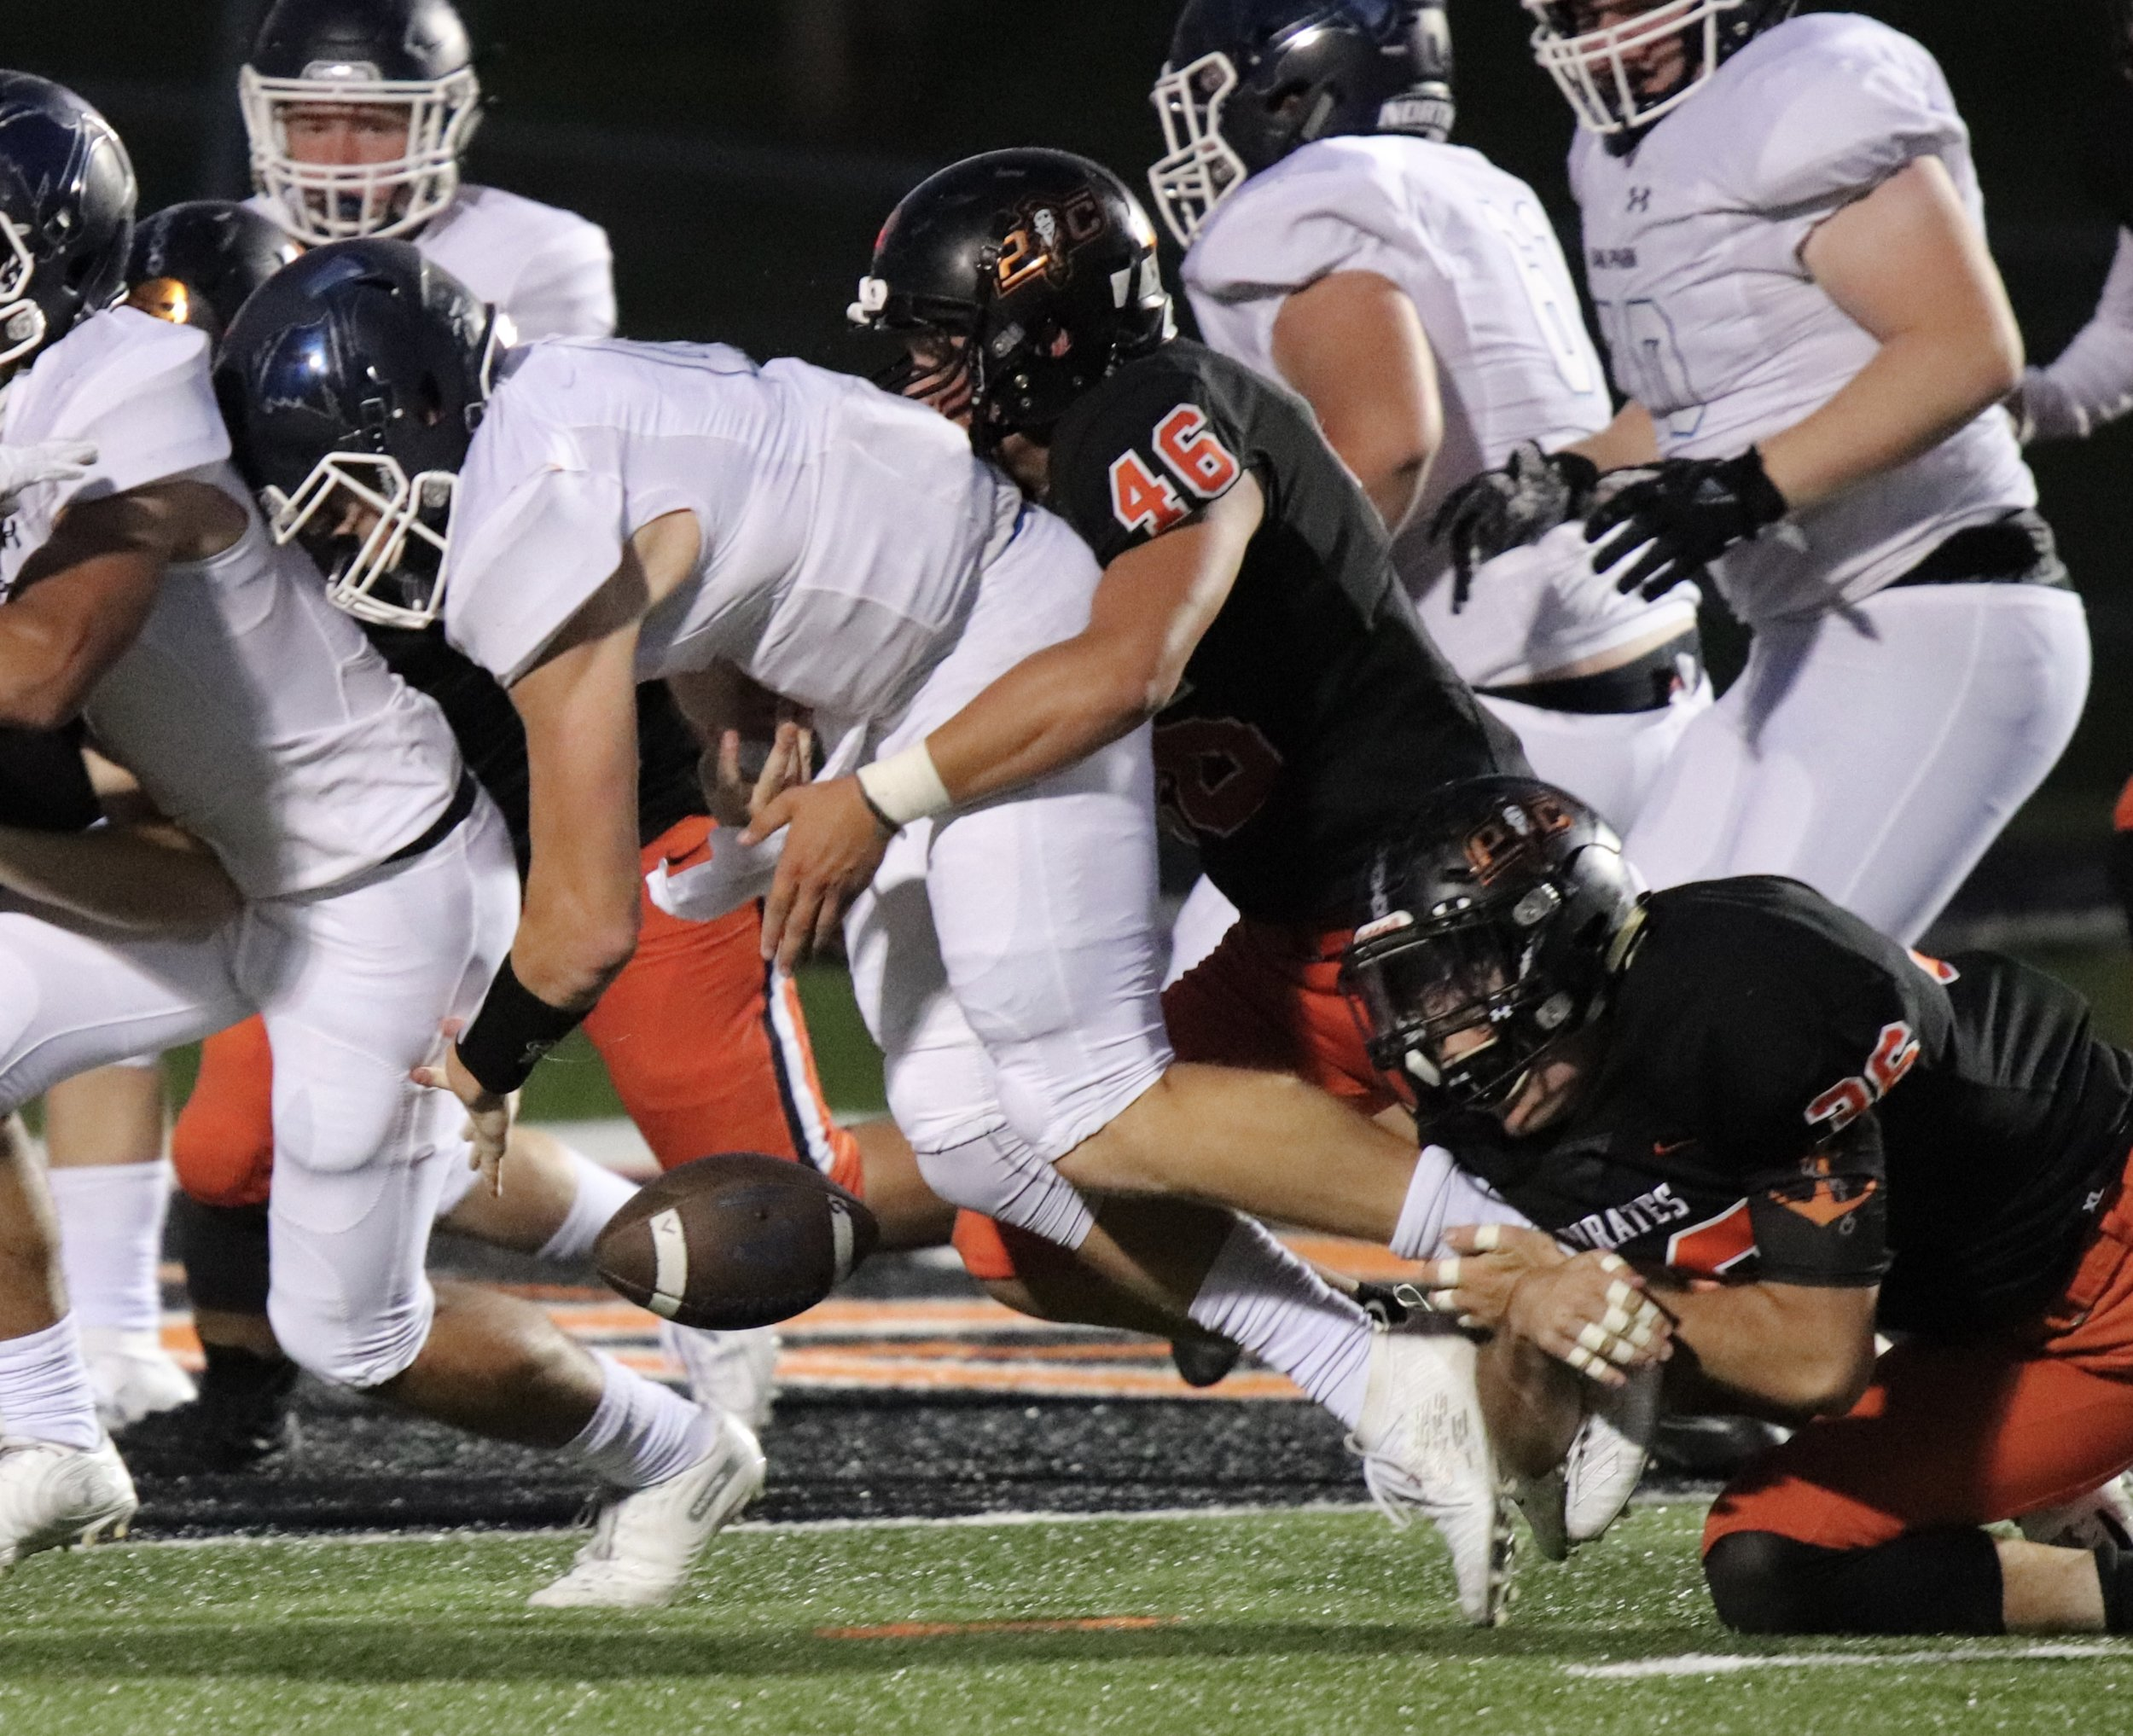 ROSS MARTIN/Special to the Citizen Gabe Harmon (46) and Forrest Boynton combine to sack Oak Park quarterback Blake Bland and force a fumble on the play late in the second quarter of a game on Friday, Aug. 30 at Pirate Stadium in Platte City.